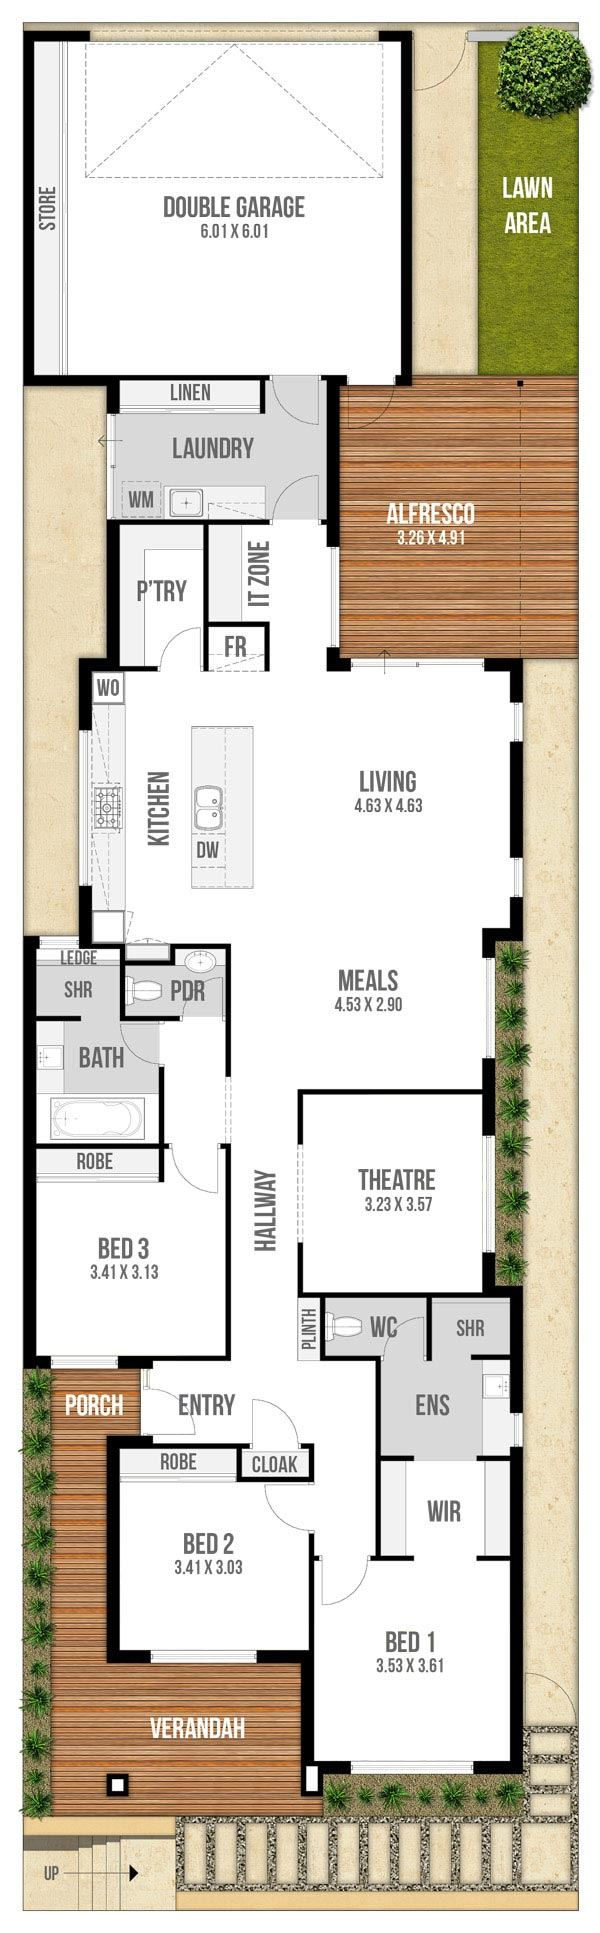 Floor Plan  Friday Narrow  block  with garage rear lane access